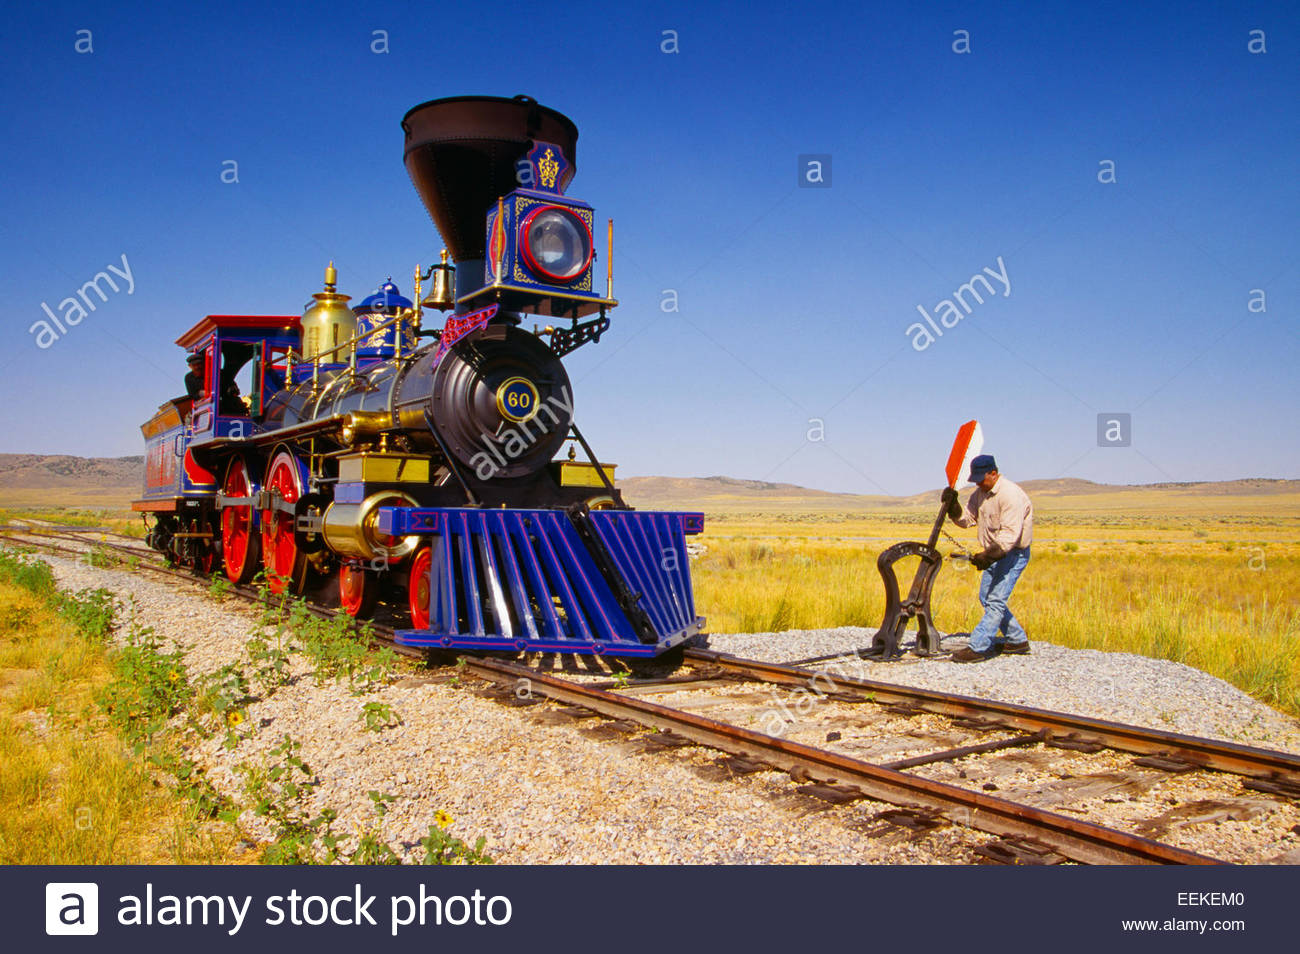 Replica locomotive, 'Jupiter' and switch.  Golden Spike National Historic Site, Utah. - Stock Image